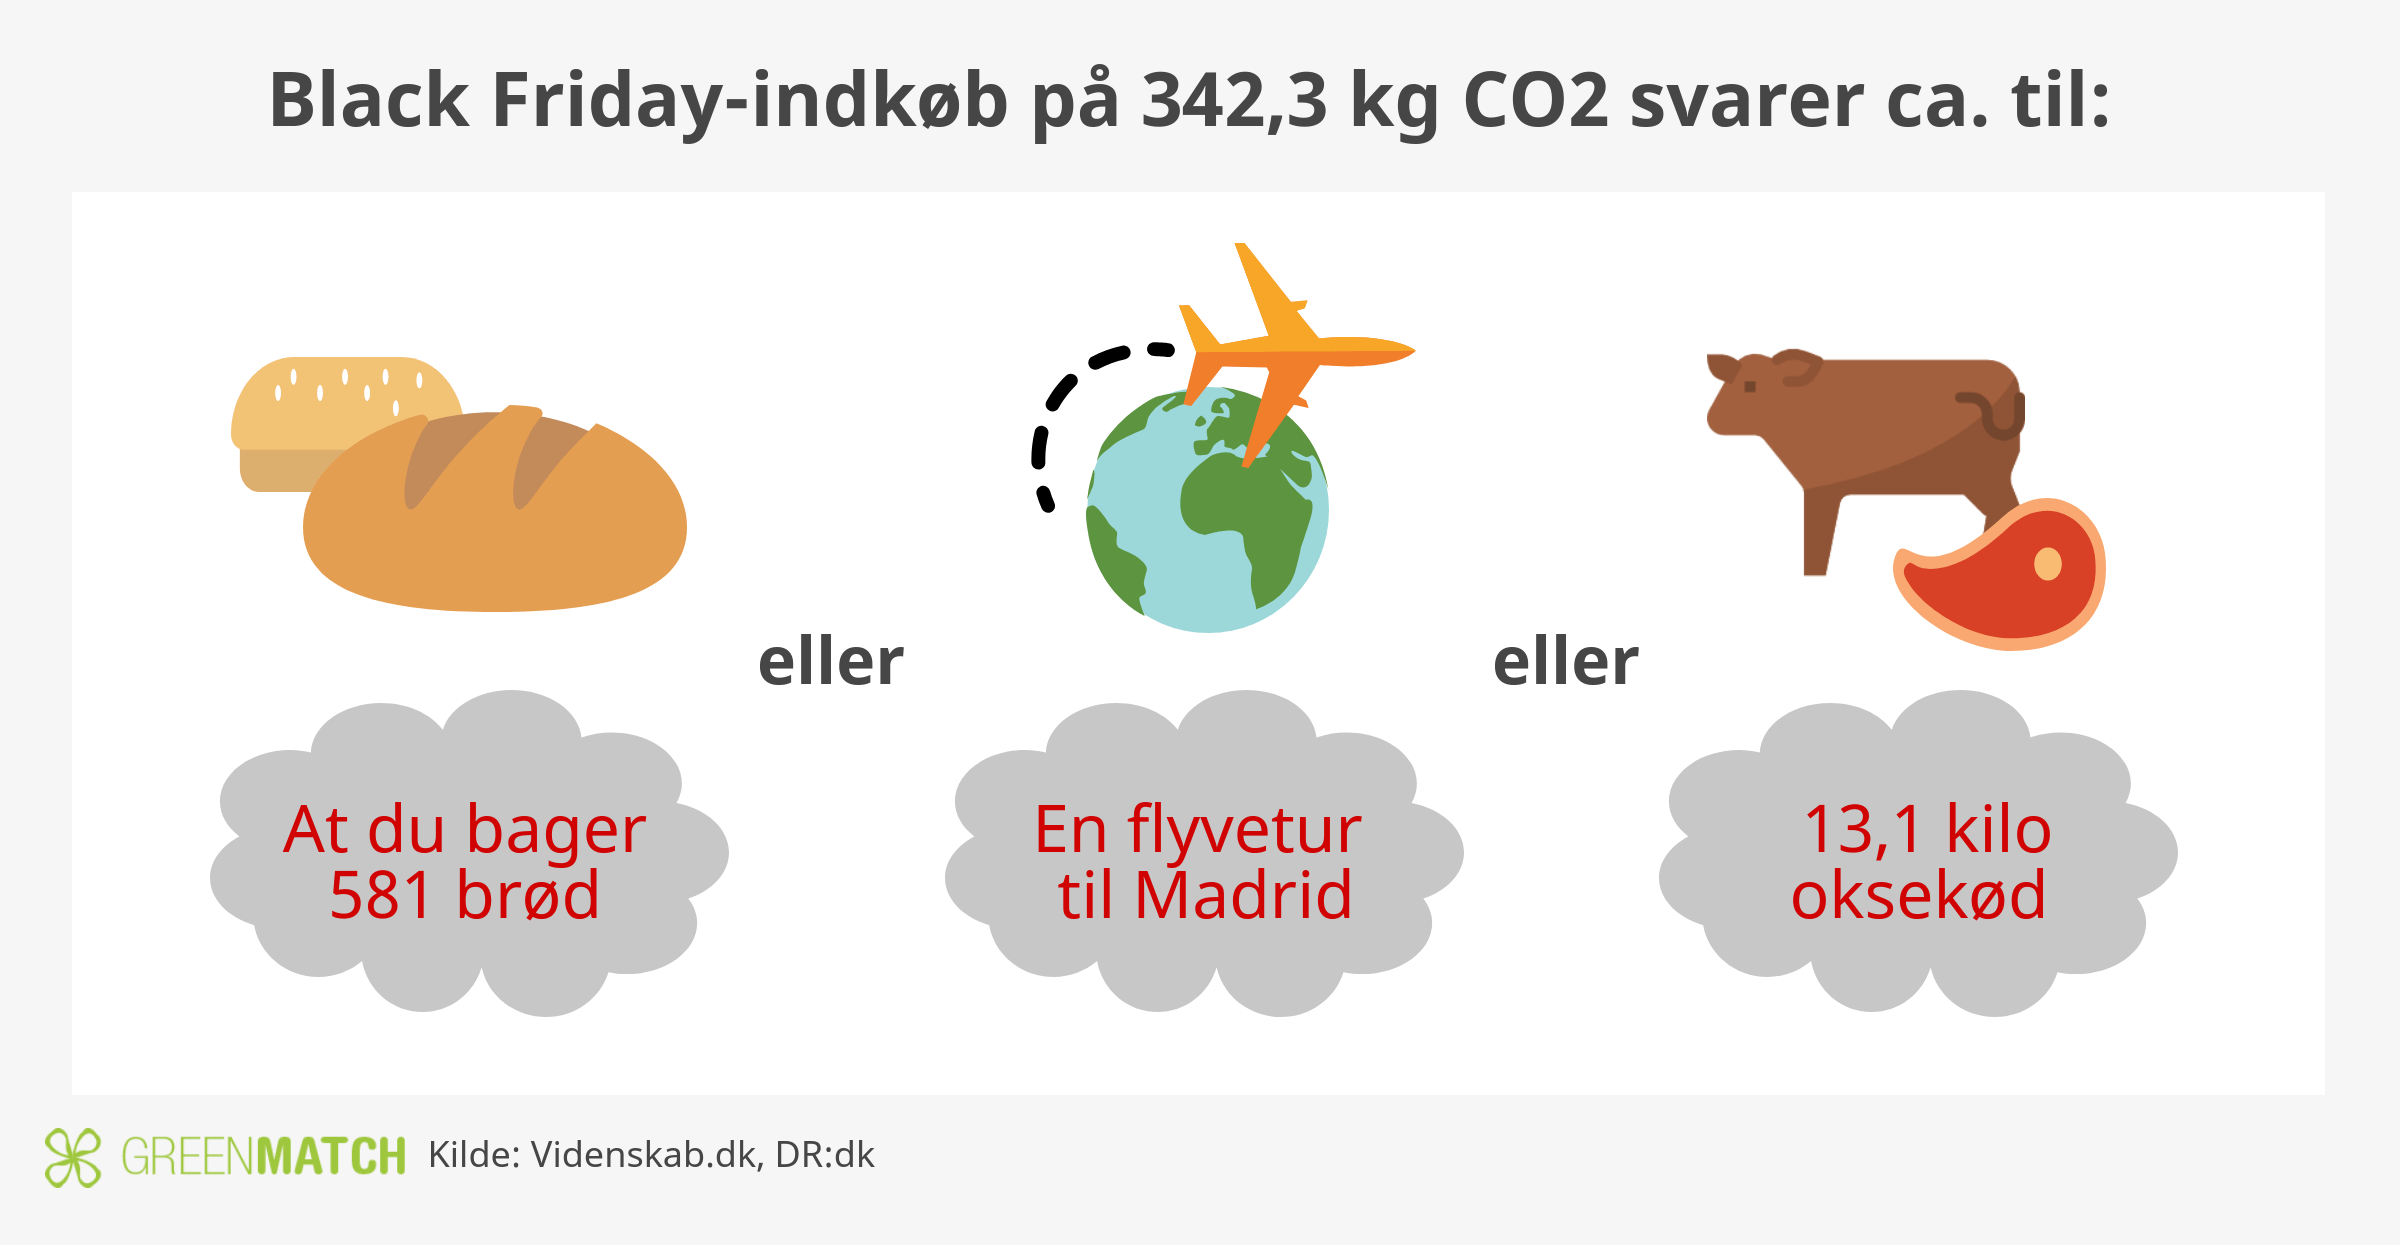 Så meget CO2 på Green Friday vol. 2.